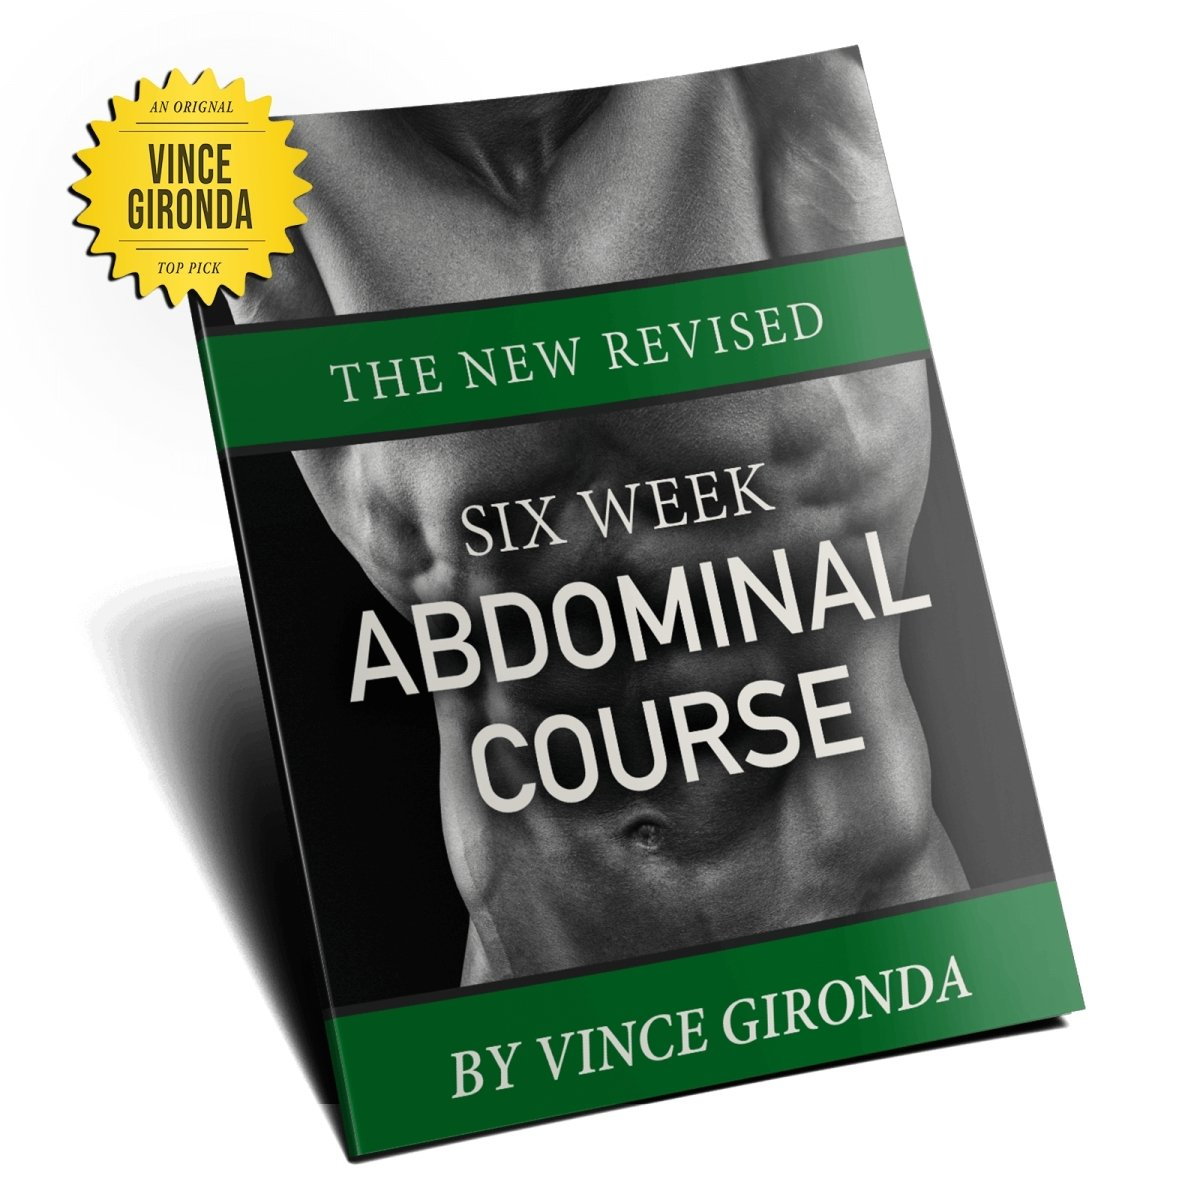 6 Week Abdominal Course by Vince Gironda - NSP Nutrition